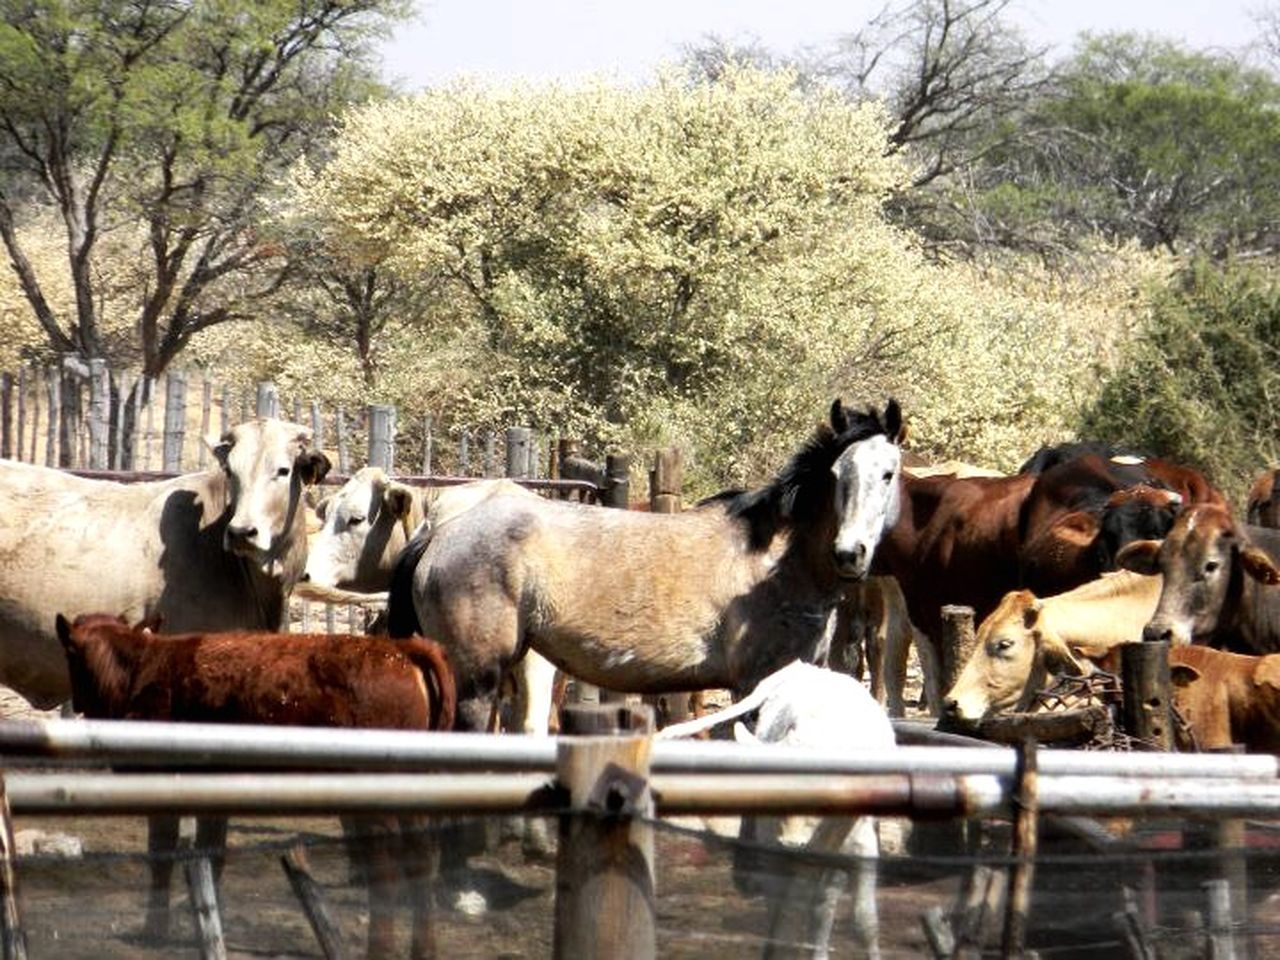 animal themes, domestic animals, livestock, cow, mammal, cattle, tree, no people, day, outdoors, nature